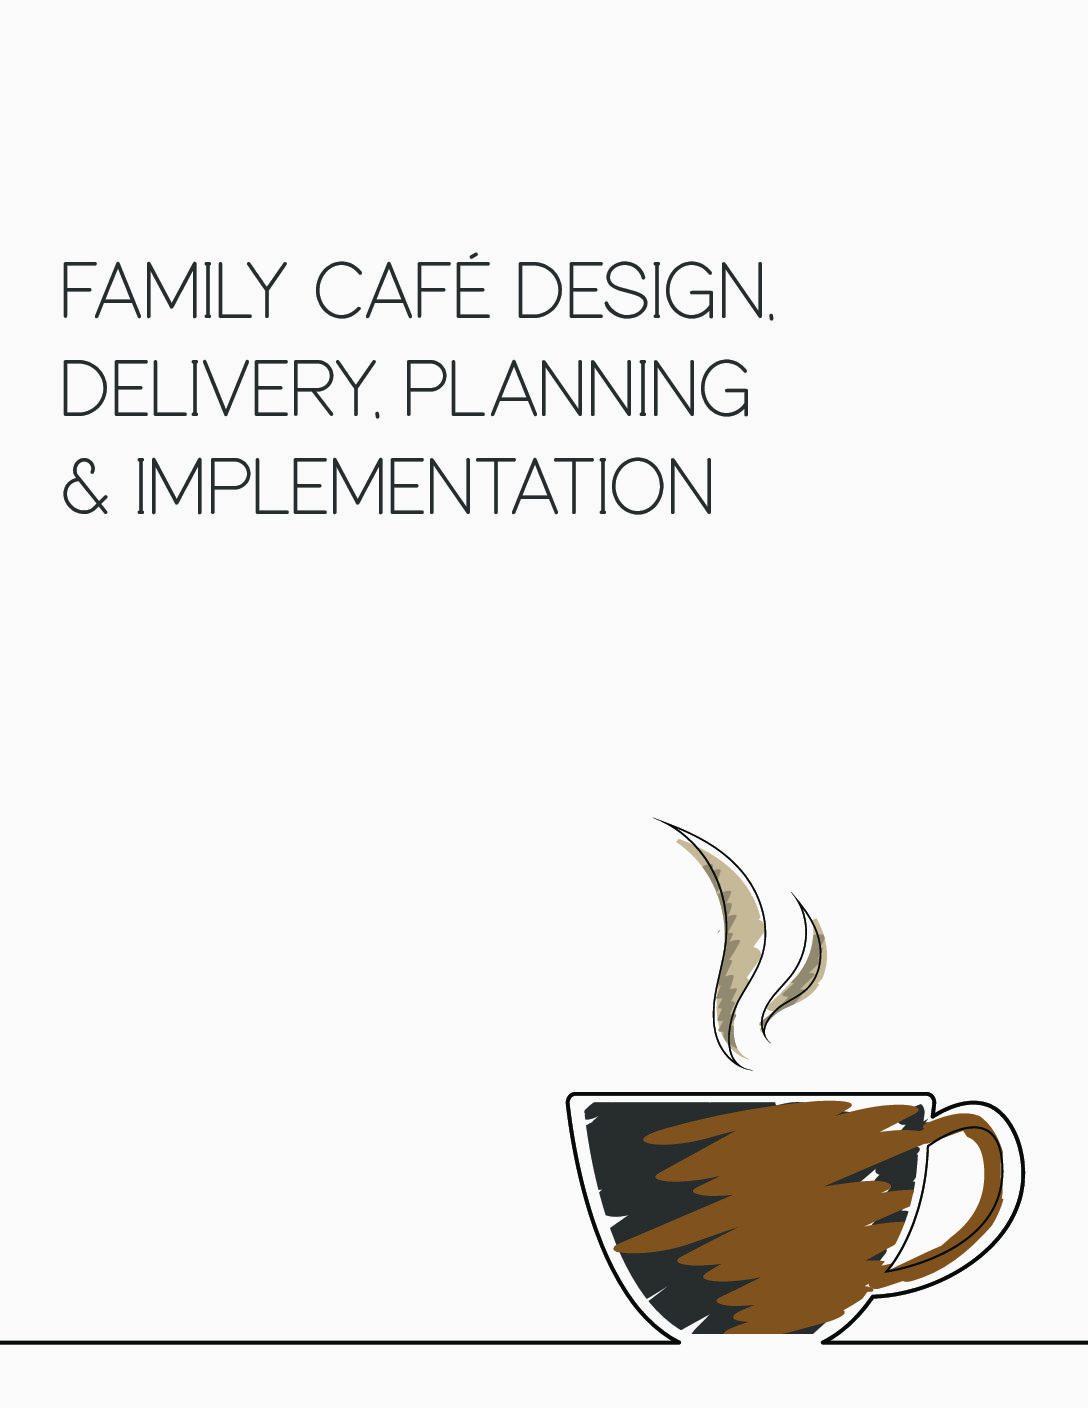 Family Café Design, Delivery, Planning & Implementation Toolkit